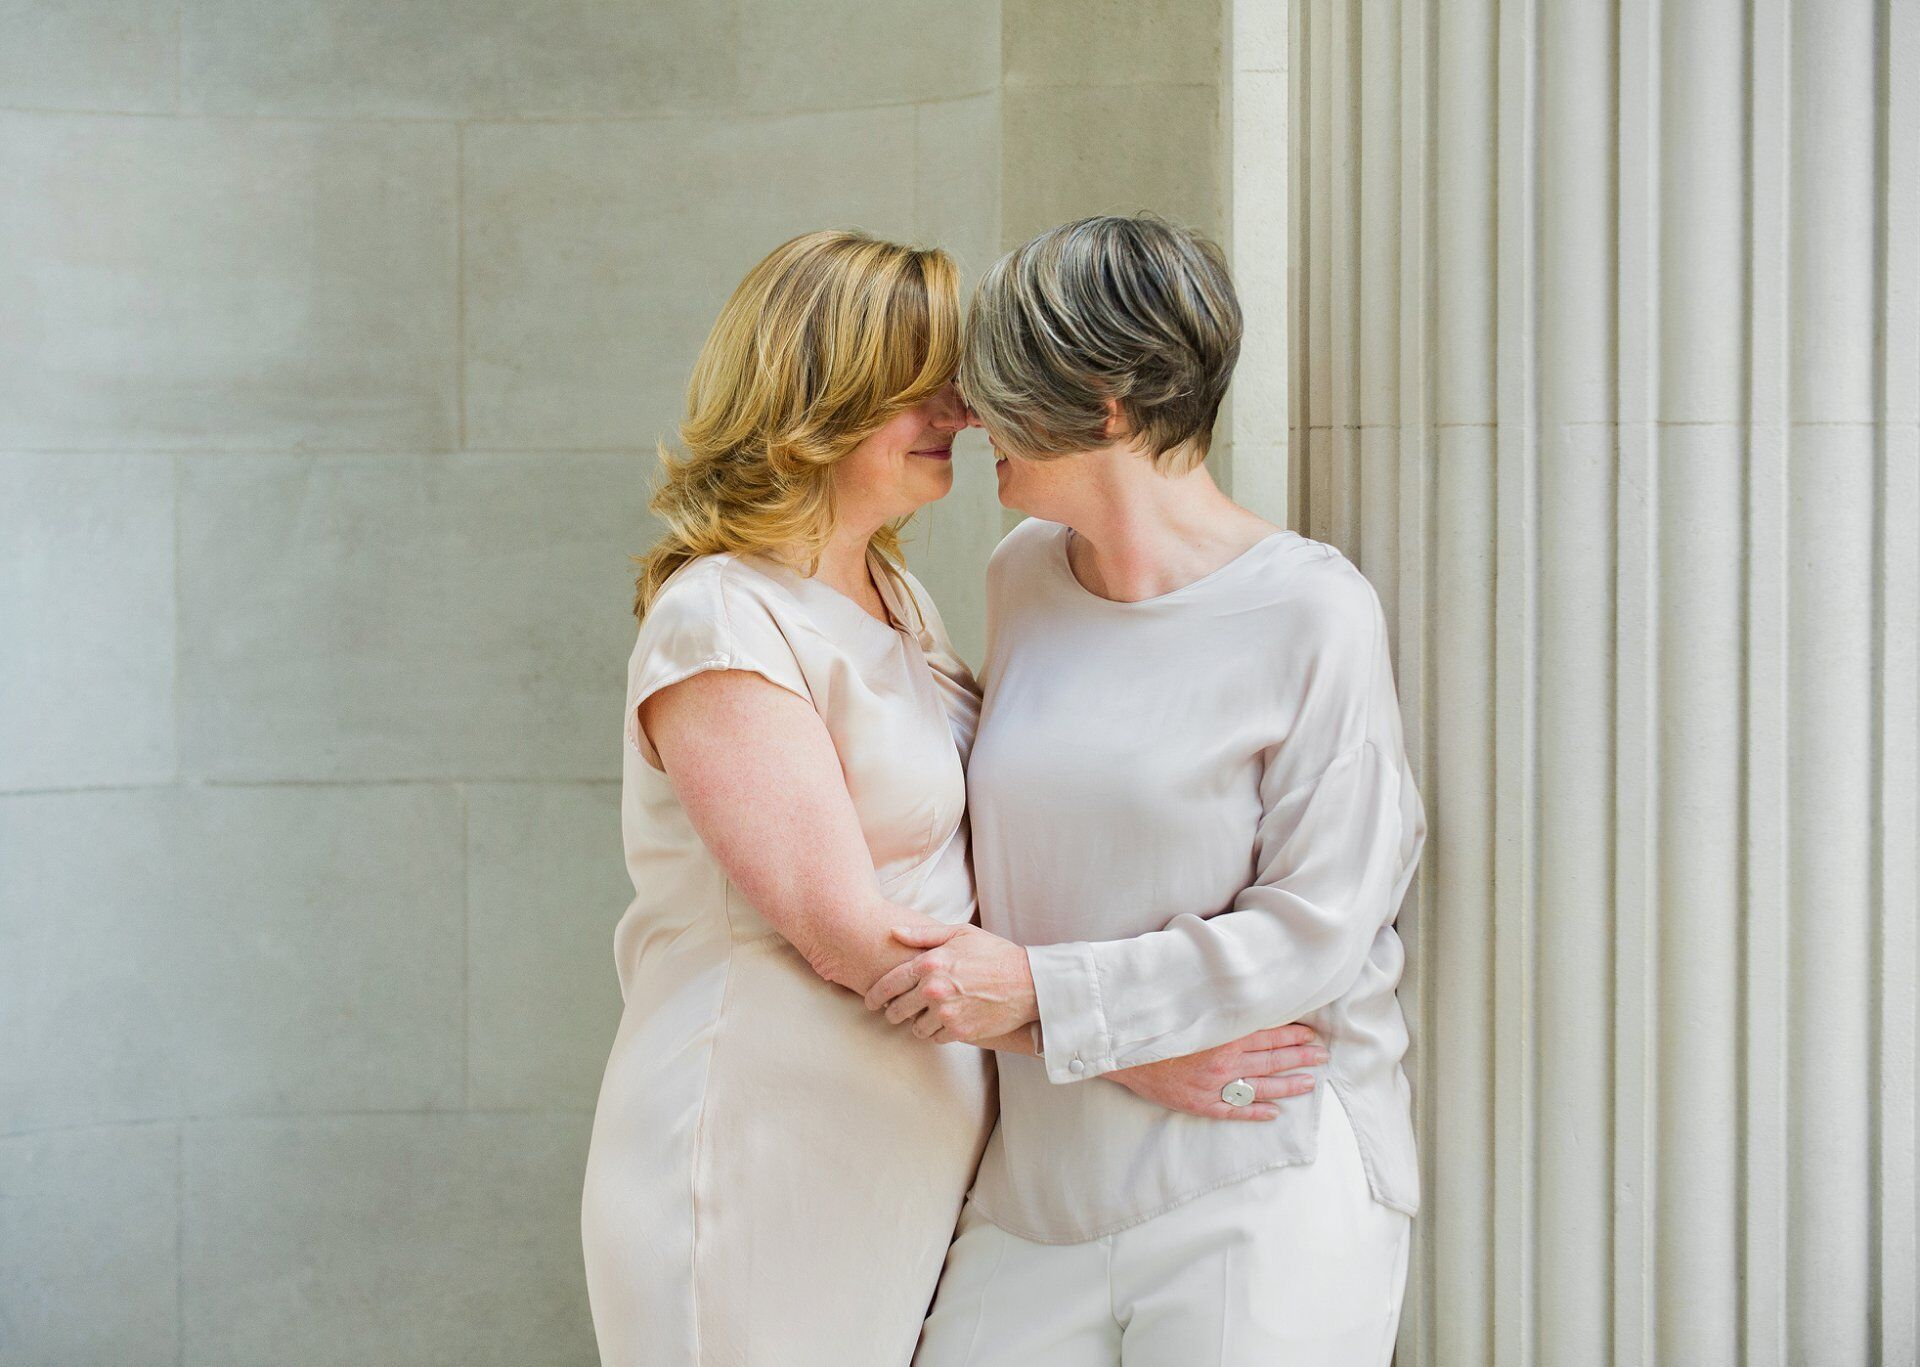 emma and sarah brides under the fluted coloumns at westminster registry office (elopement wedding photography by emma duggan)